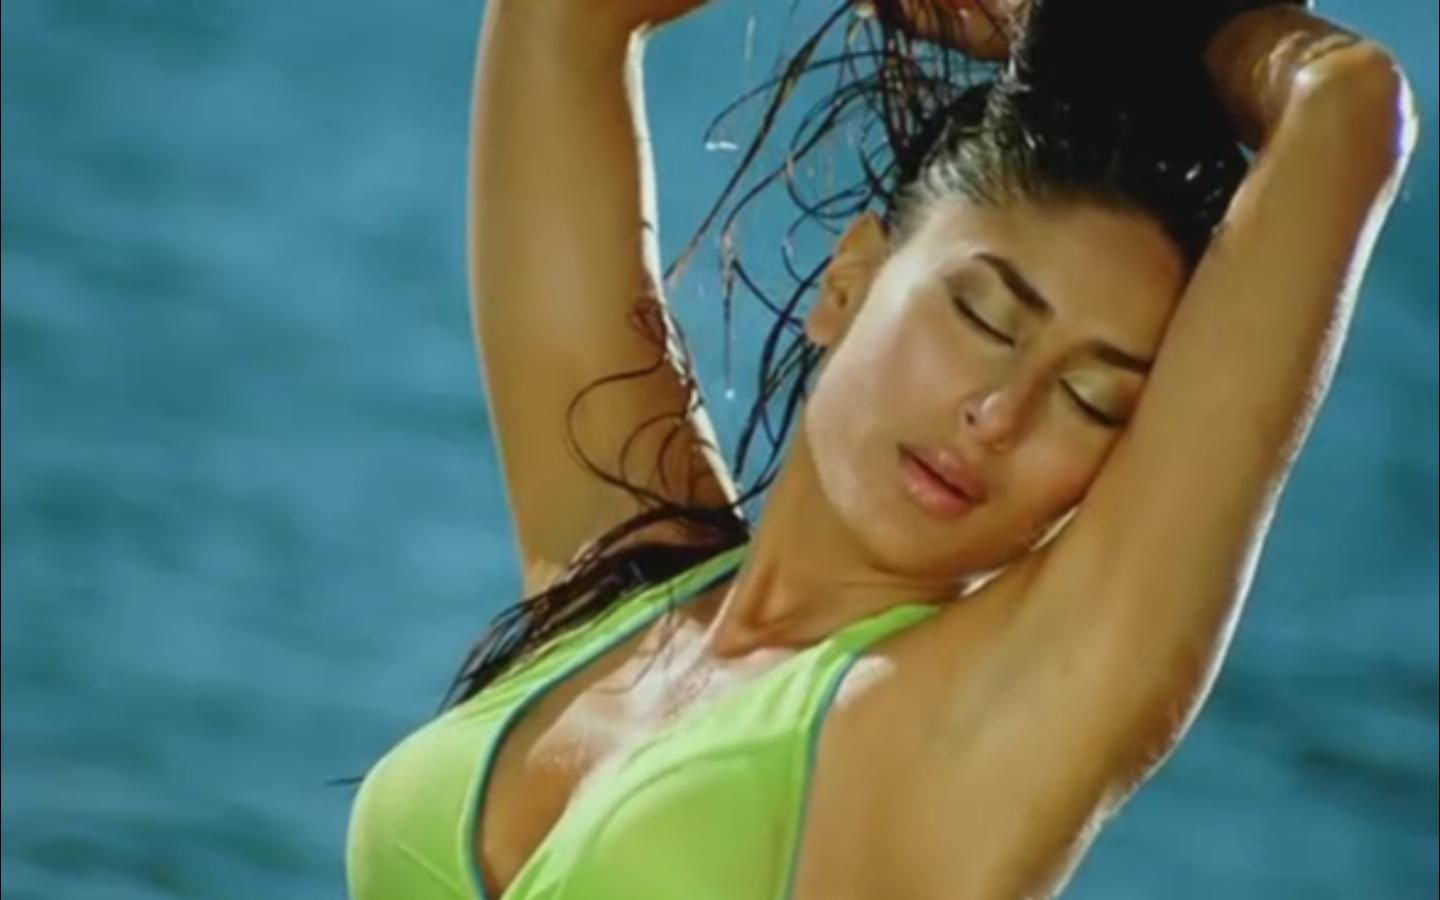 Make kareena kapoor bikini caps girl amazing